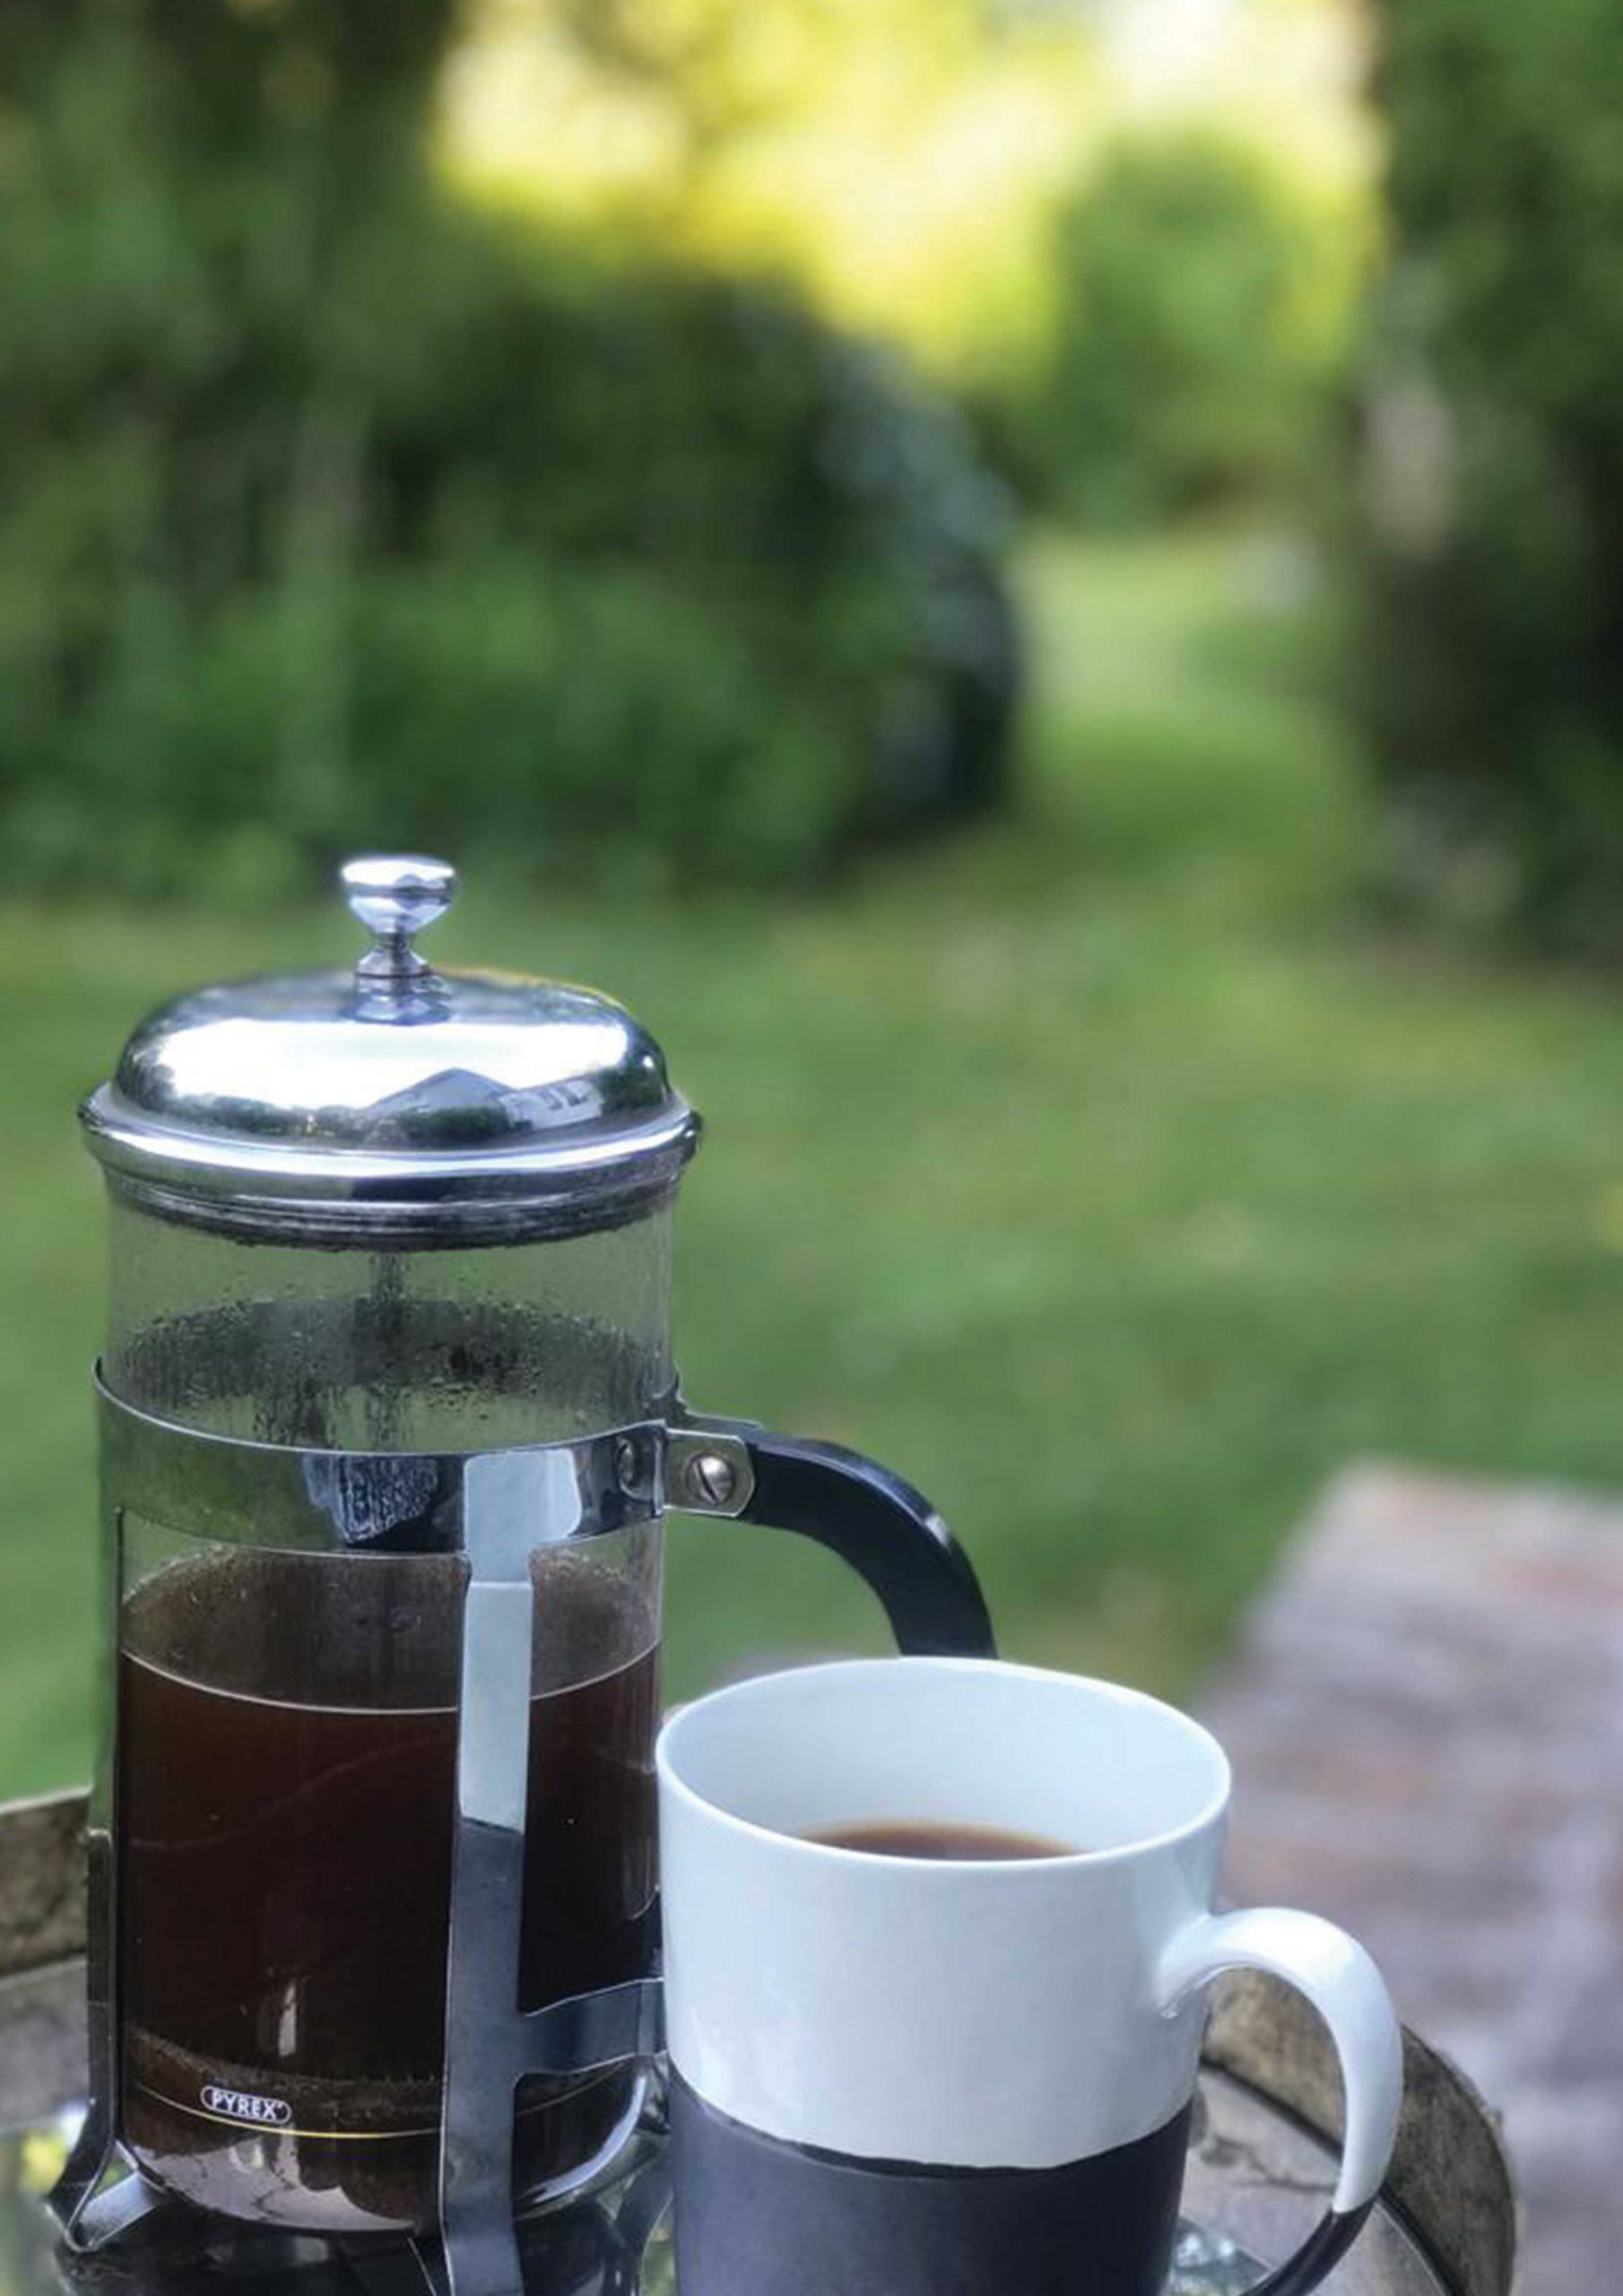 Quay coffee in cafetiere with rustic coffee mug